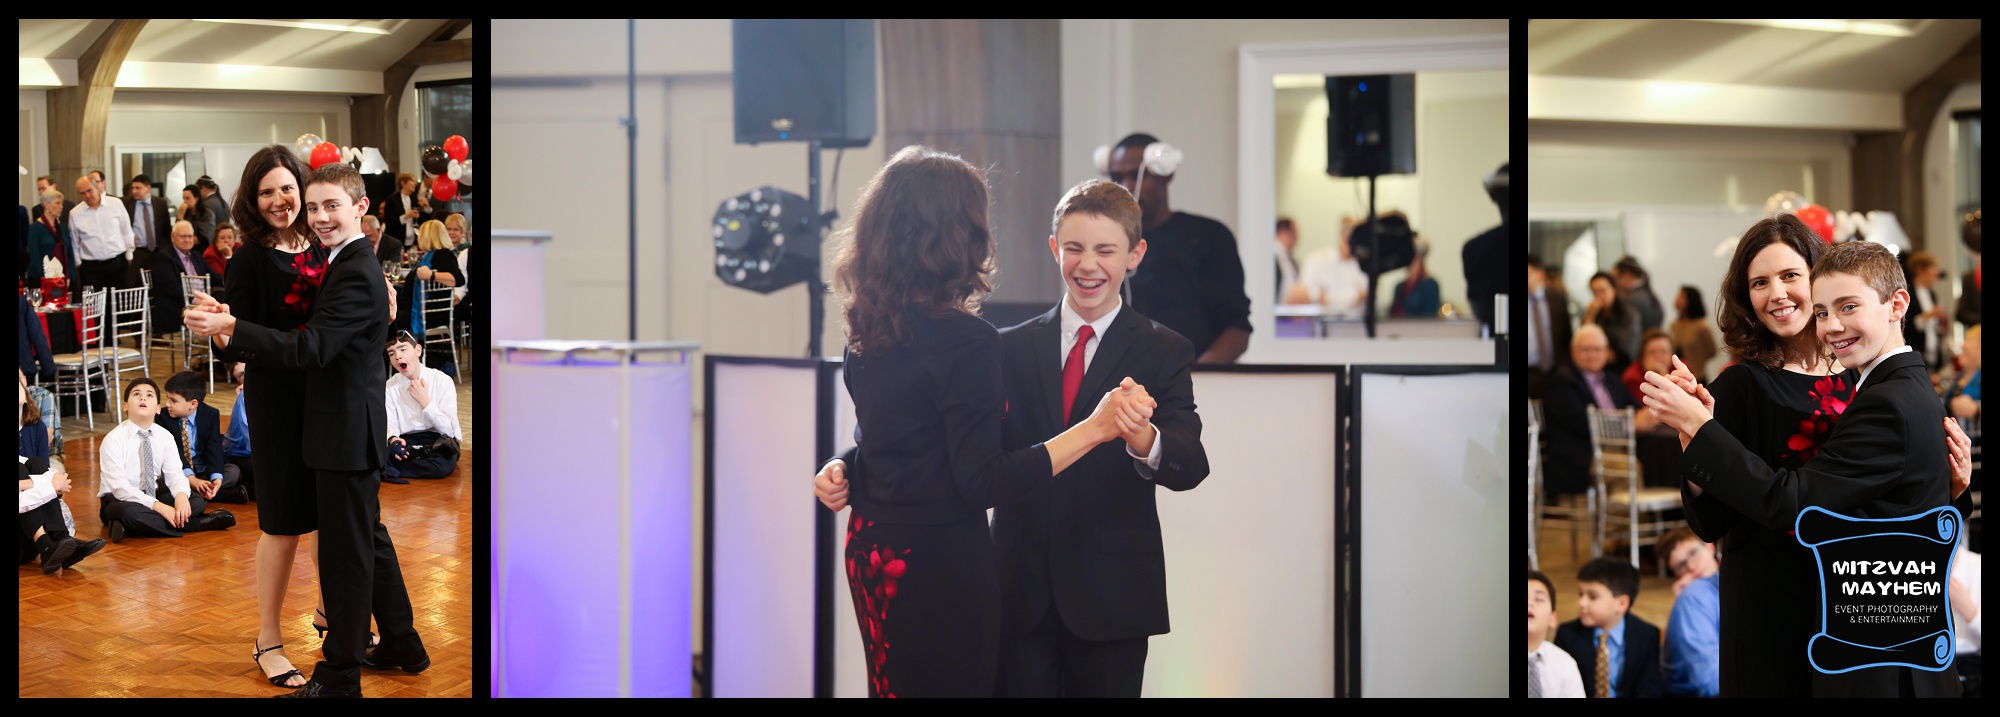 mercer-boathouse-mitzvah-nj-0484.jpg